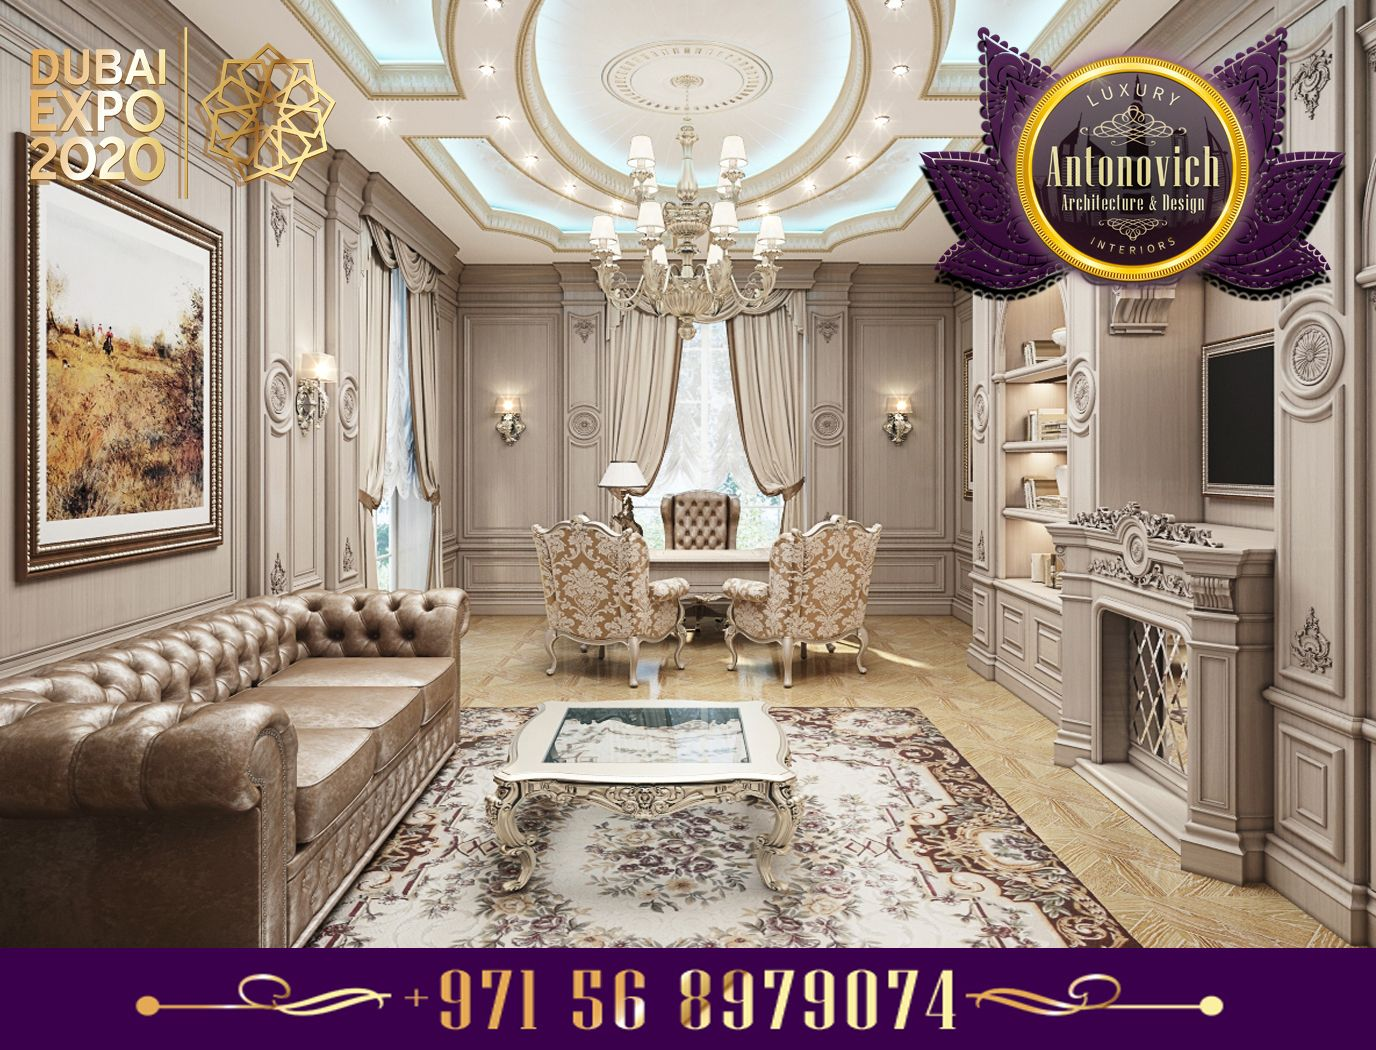 Beautiful dressing room design in dubai by luxury antonovich design - Luxury Interior Design Office Dubai Expo 2020 Antonovich Design Ae